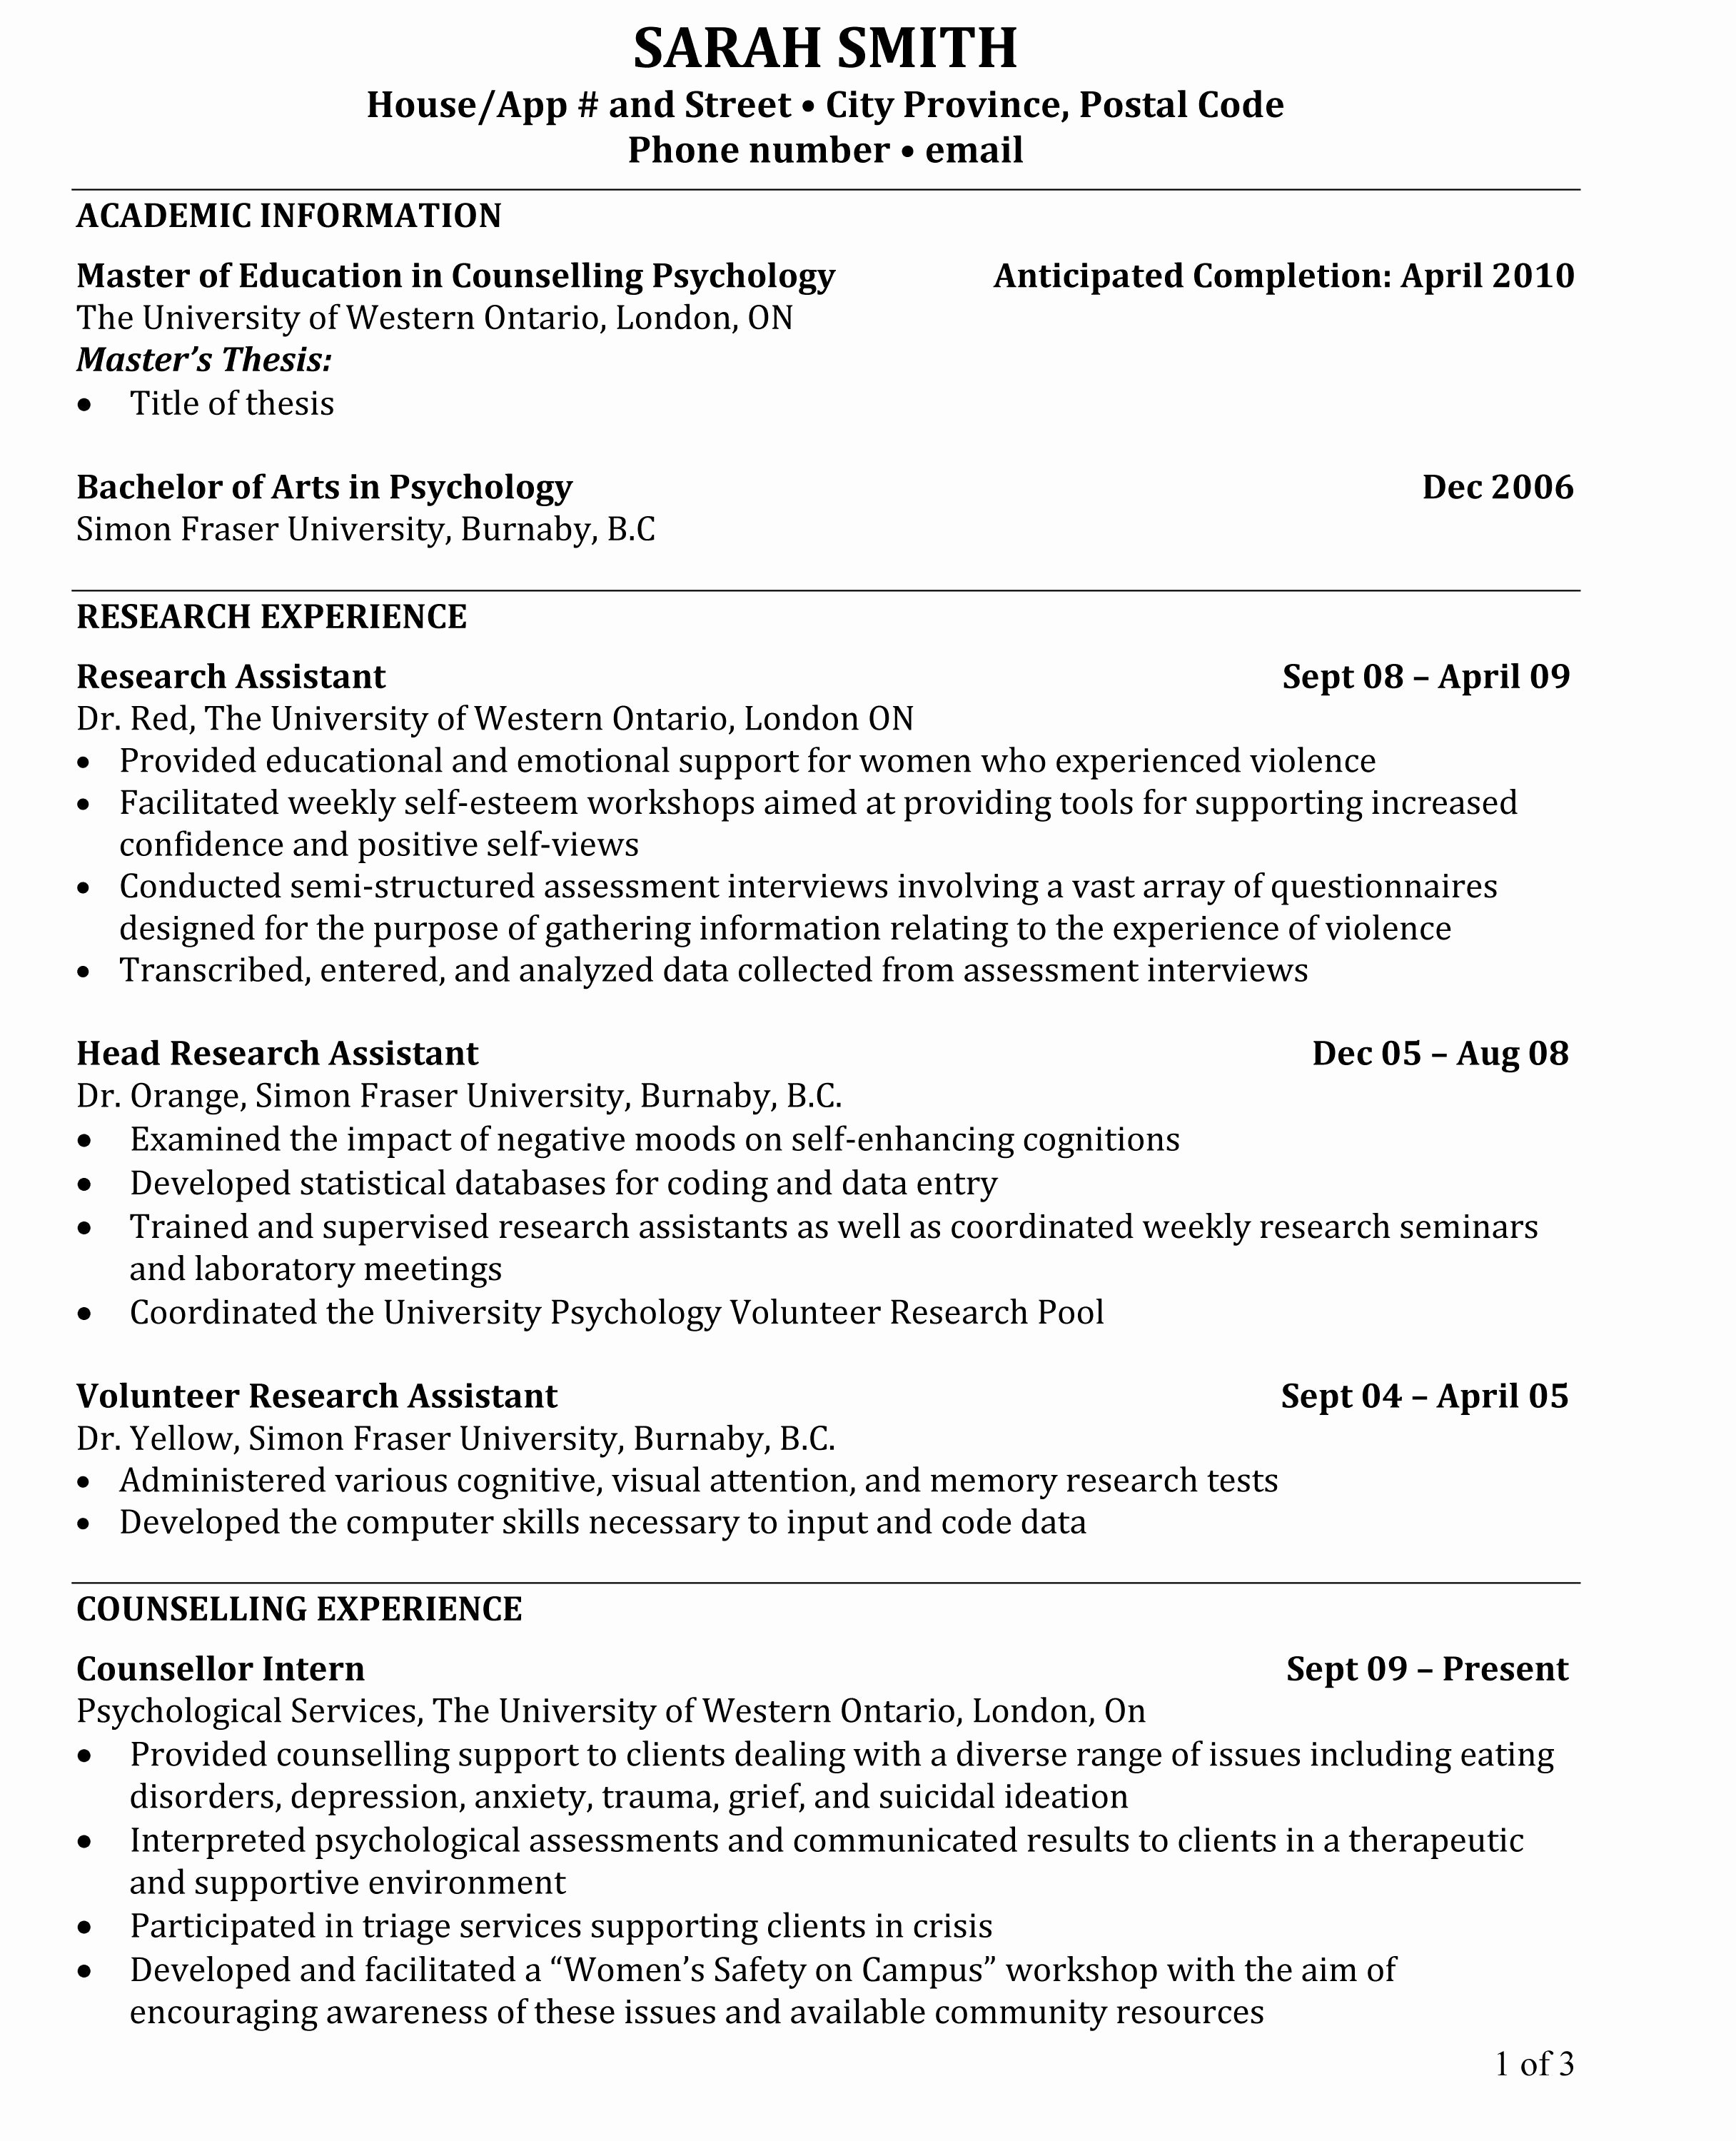 Graduate School Resume Template Luxury Pin by Kathy Thompson On Teaching Pinterest